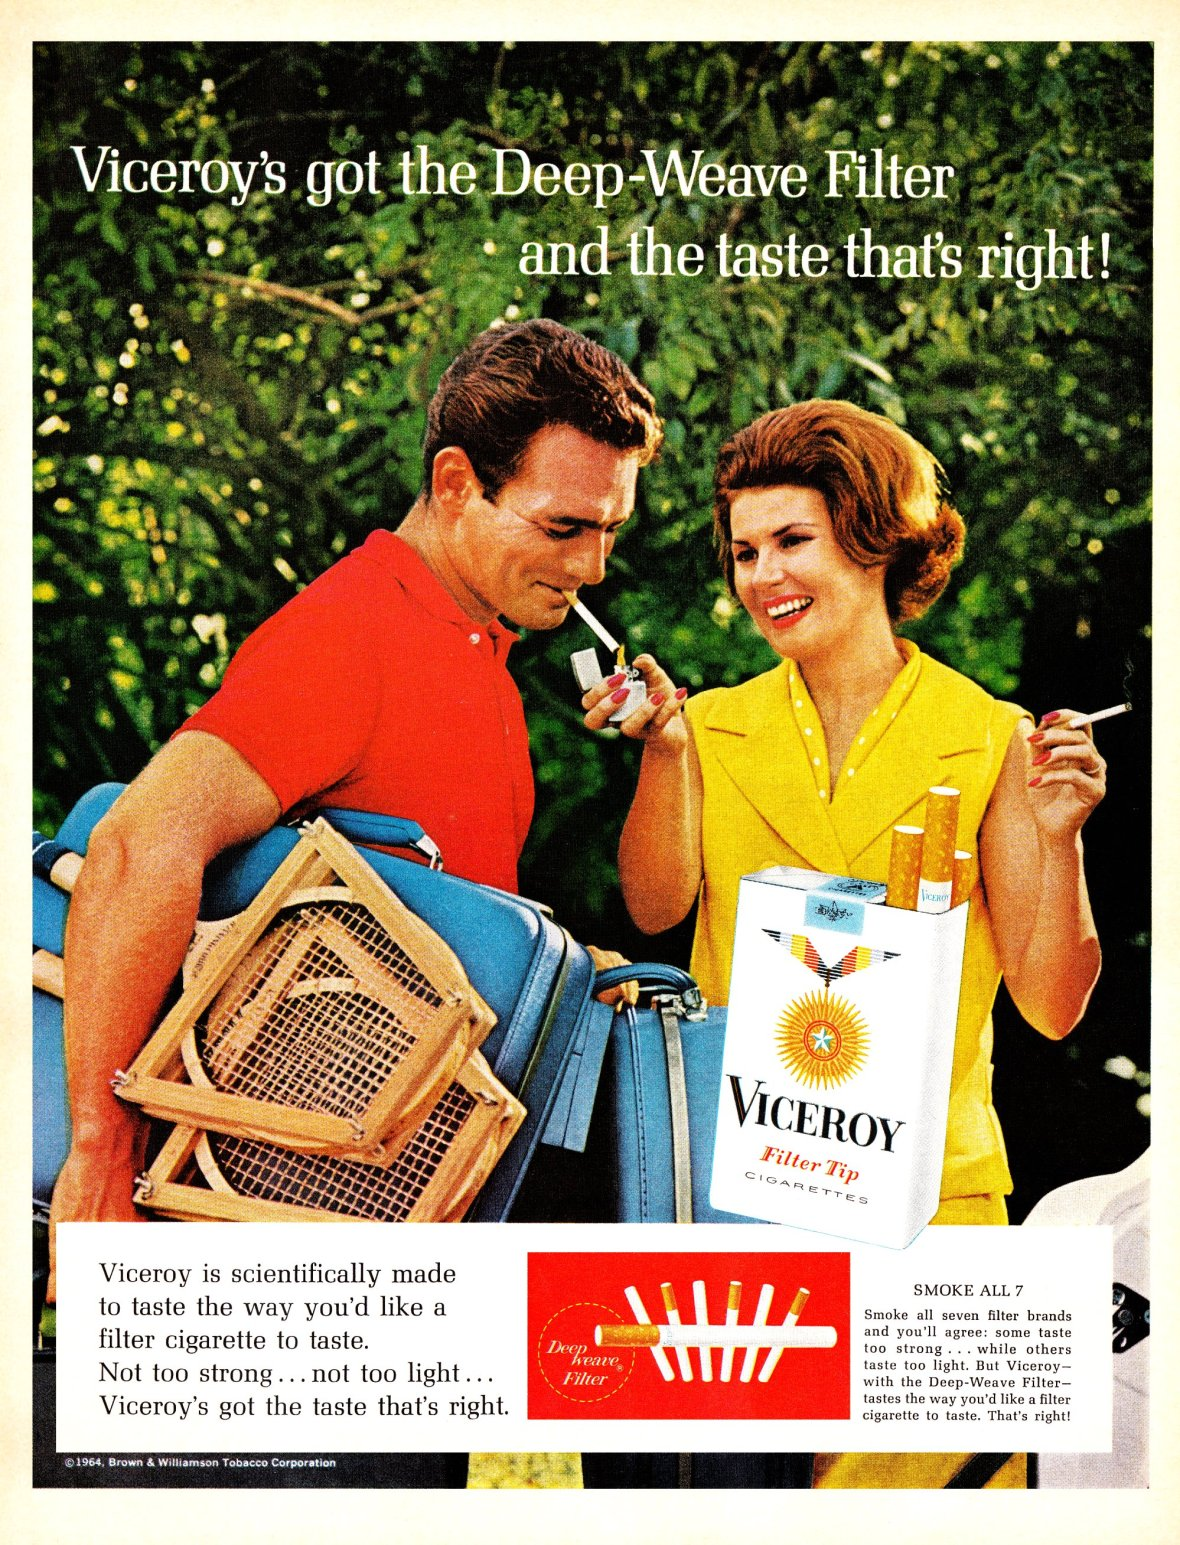 Viceroy - published in Life - June 19, 1964